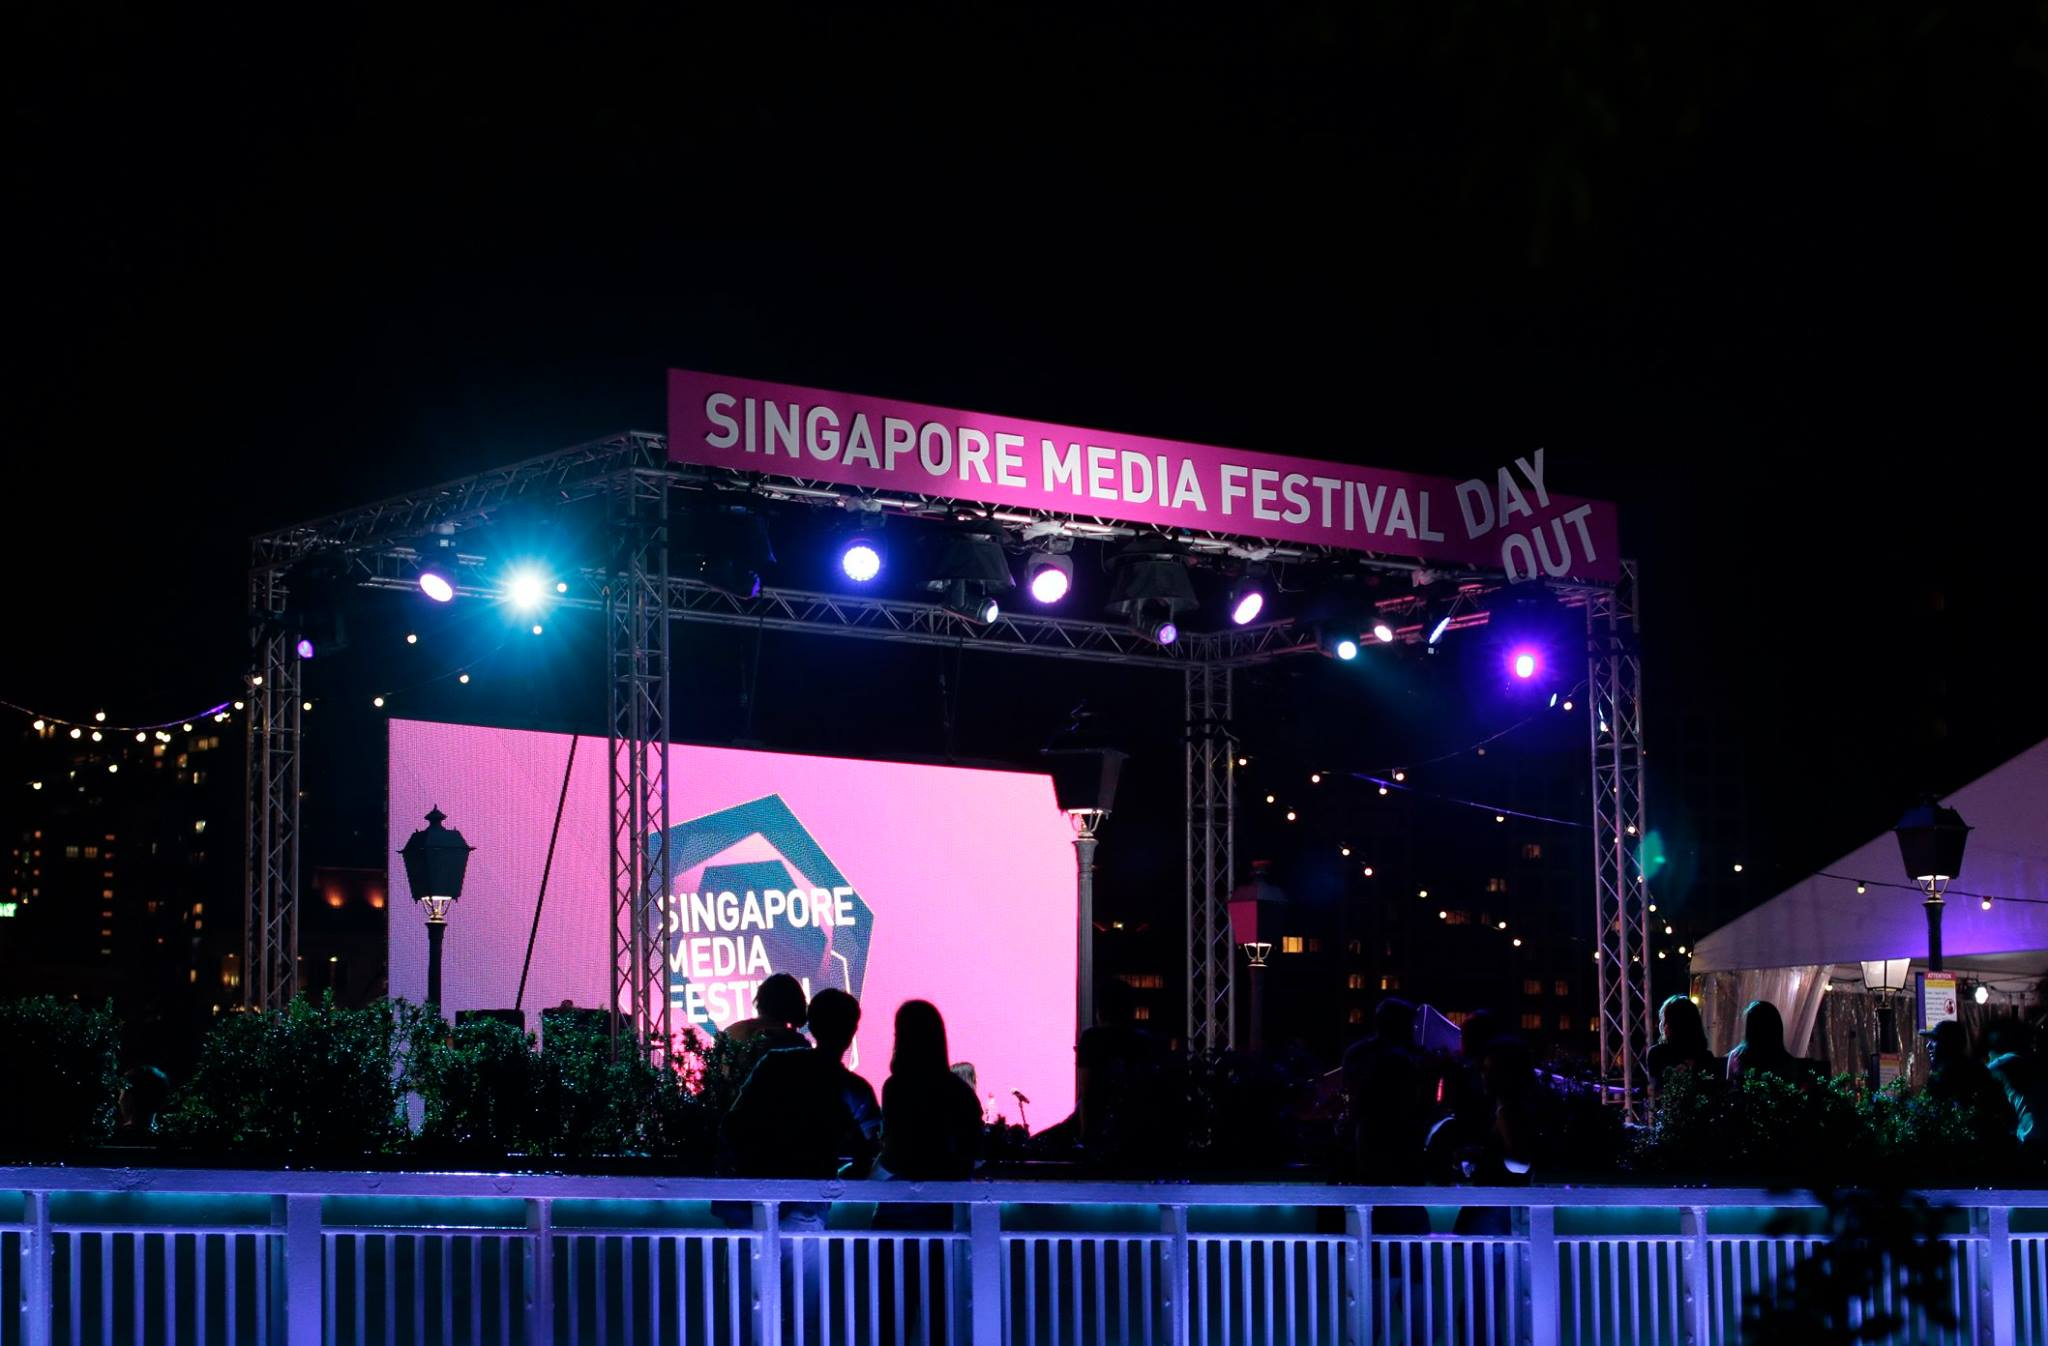 Photo courtesy: Singapore Media Festival FB